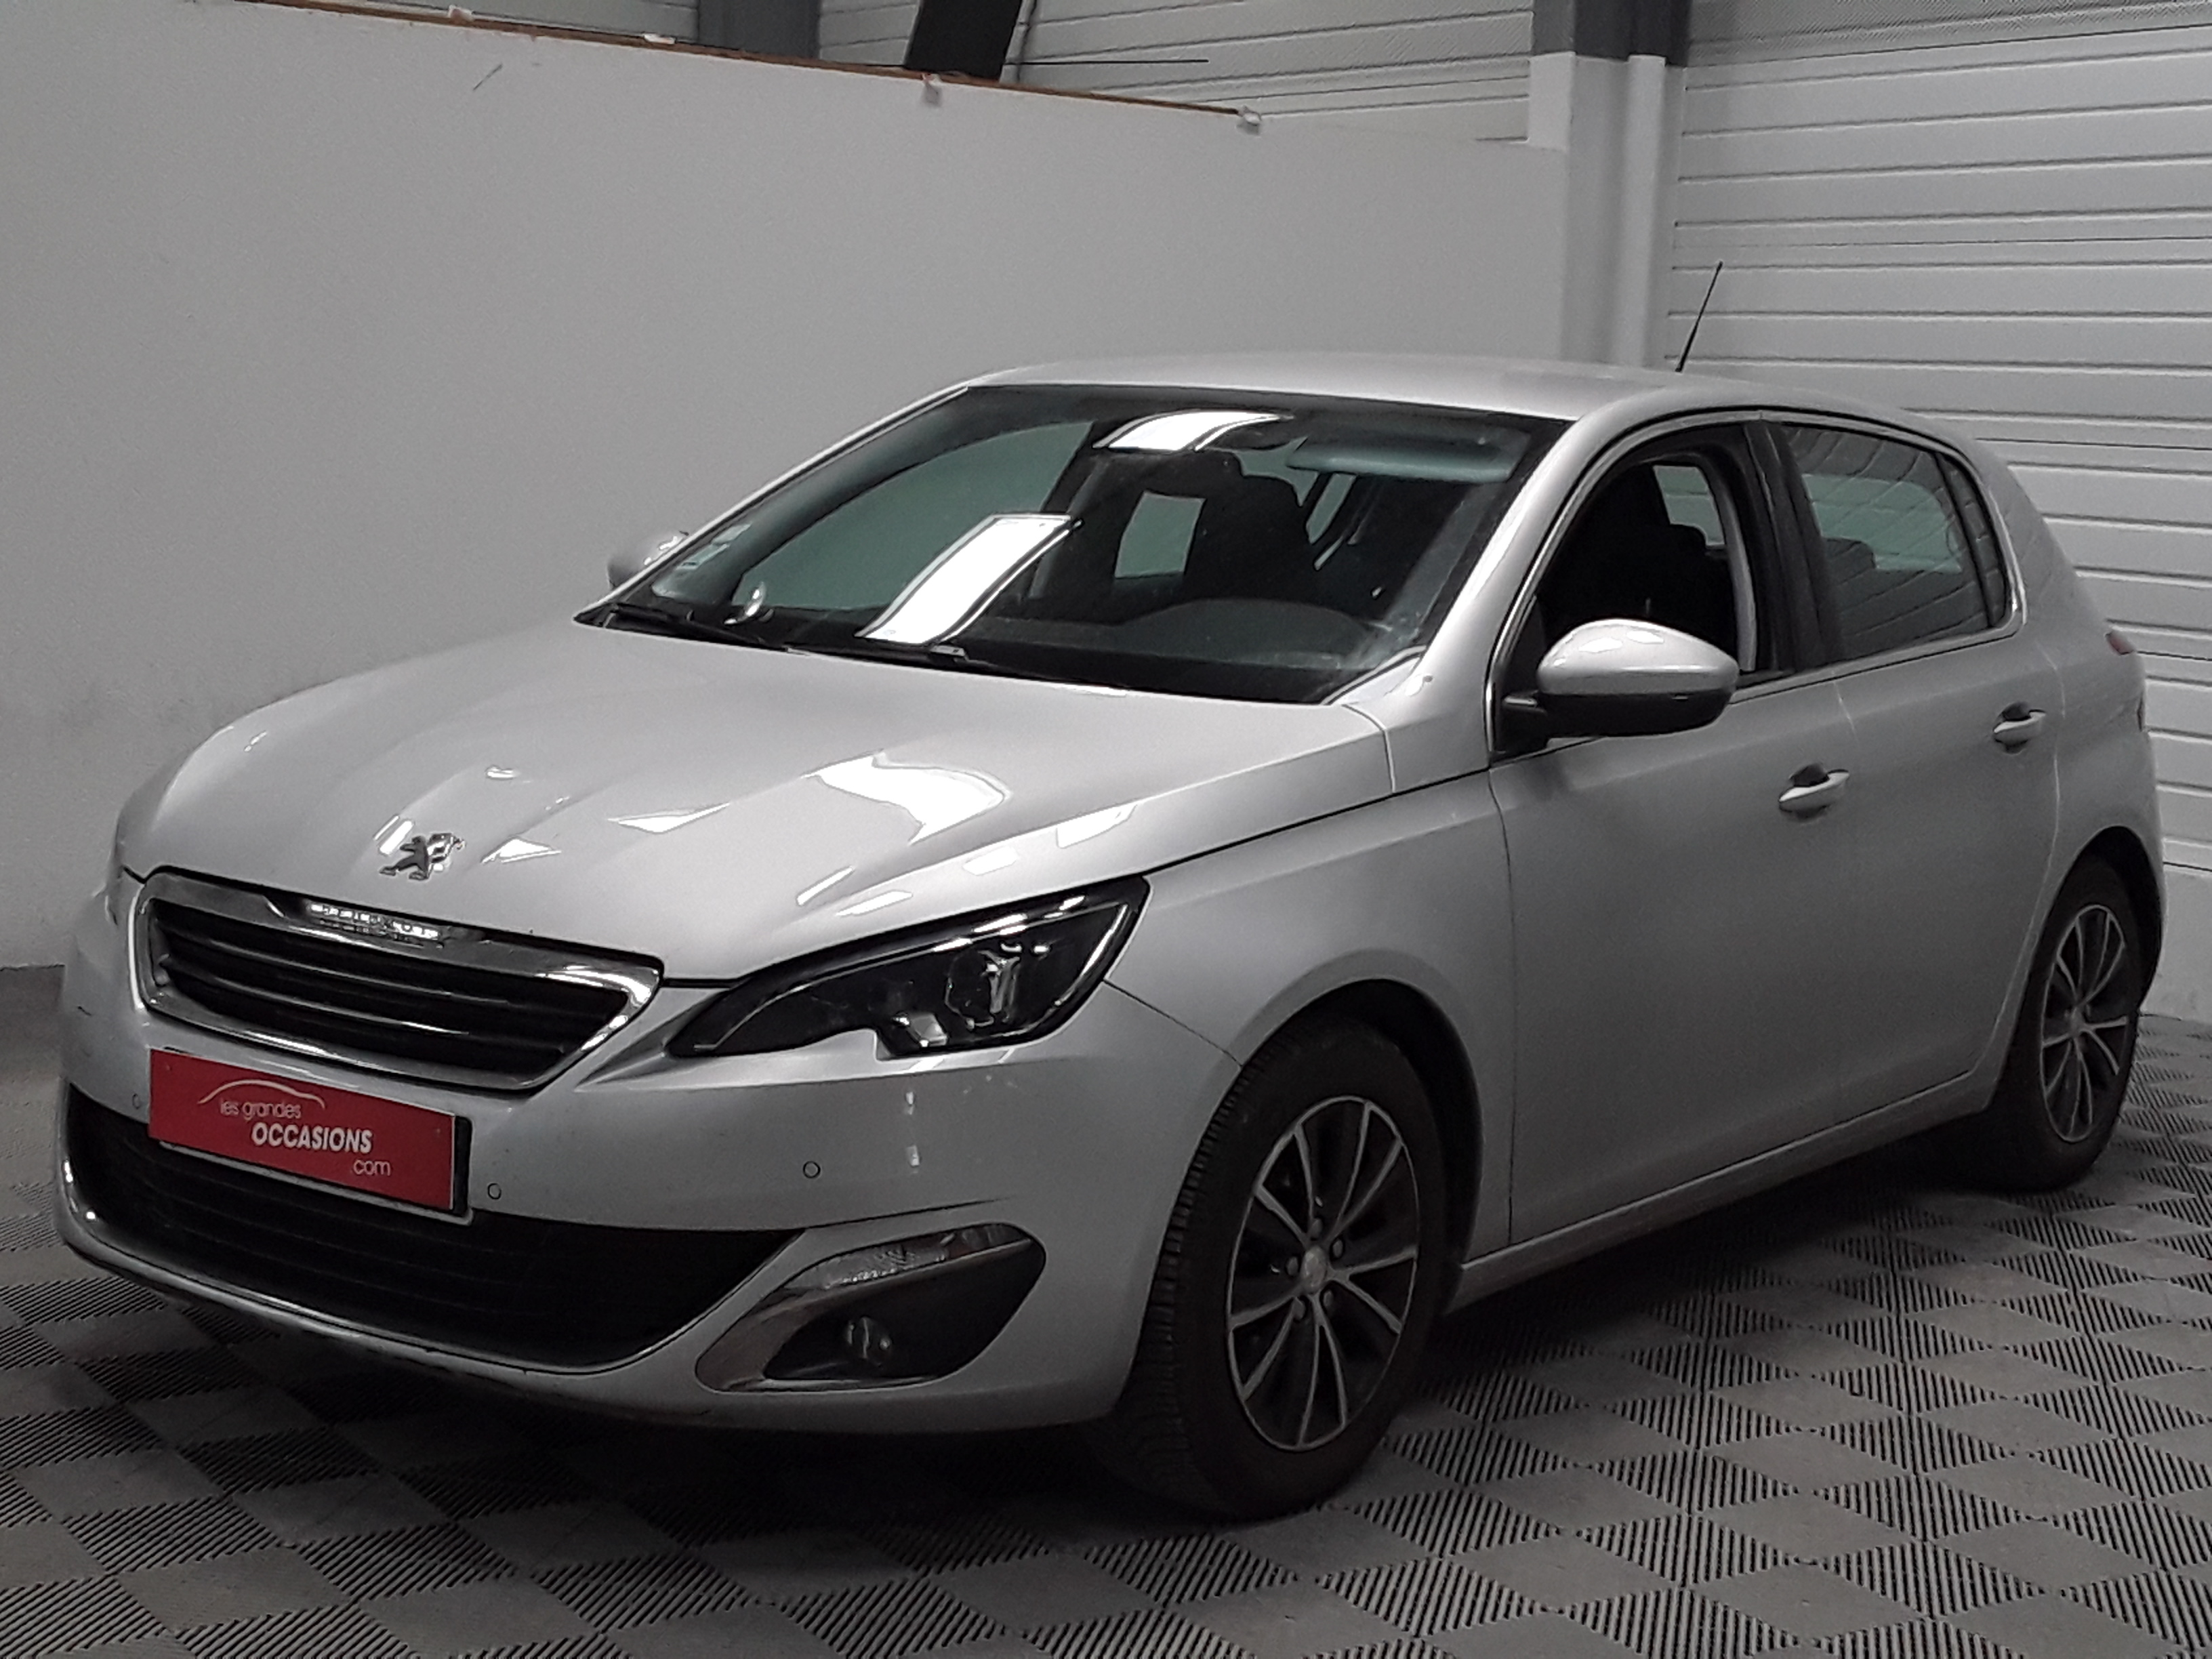 PEUGEOT 308 1.6 THP 125 ch BVM6 Allure d'occasion